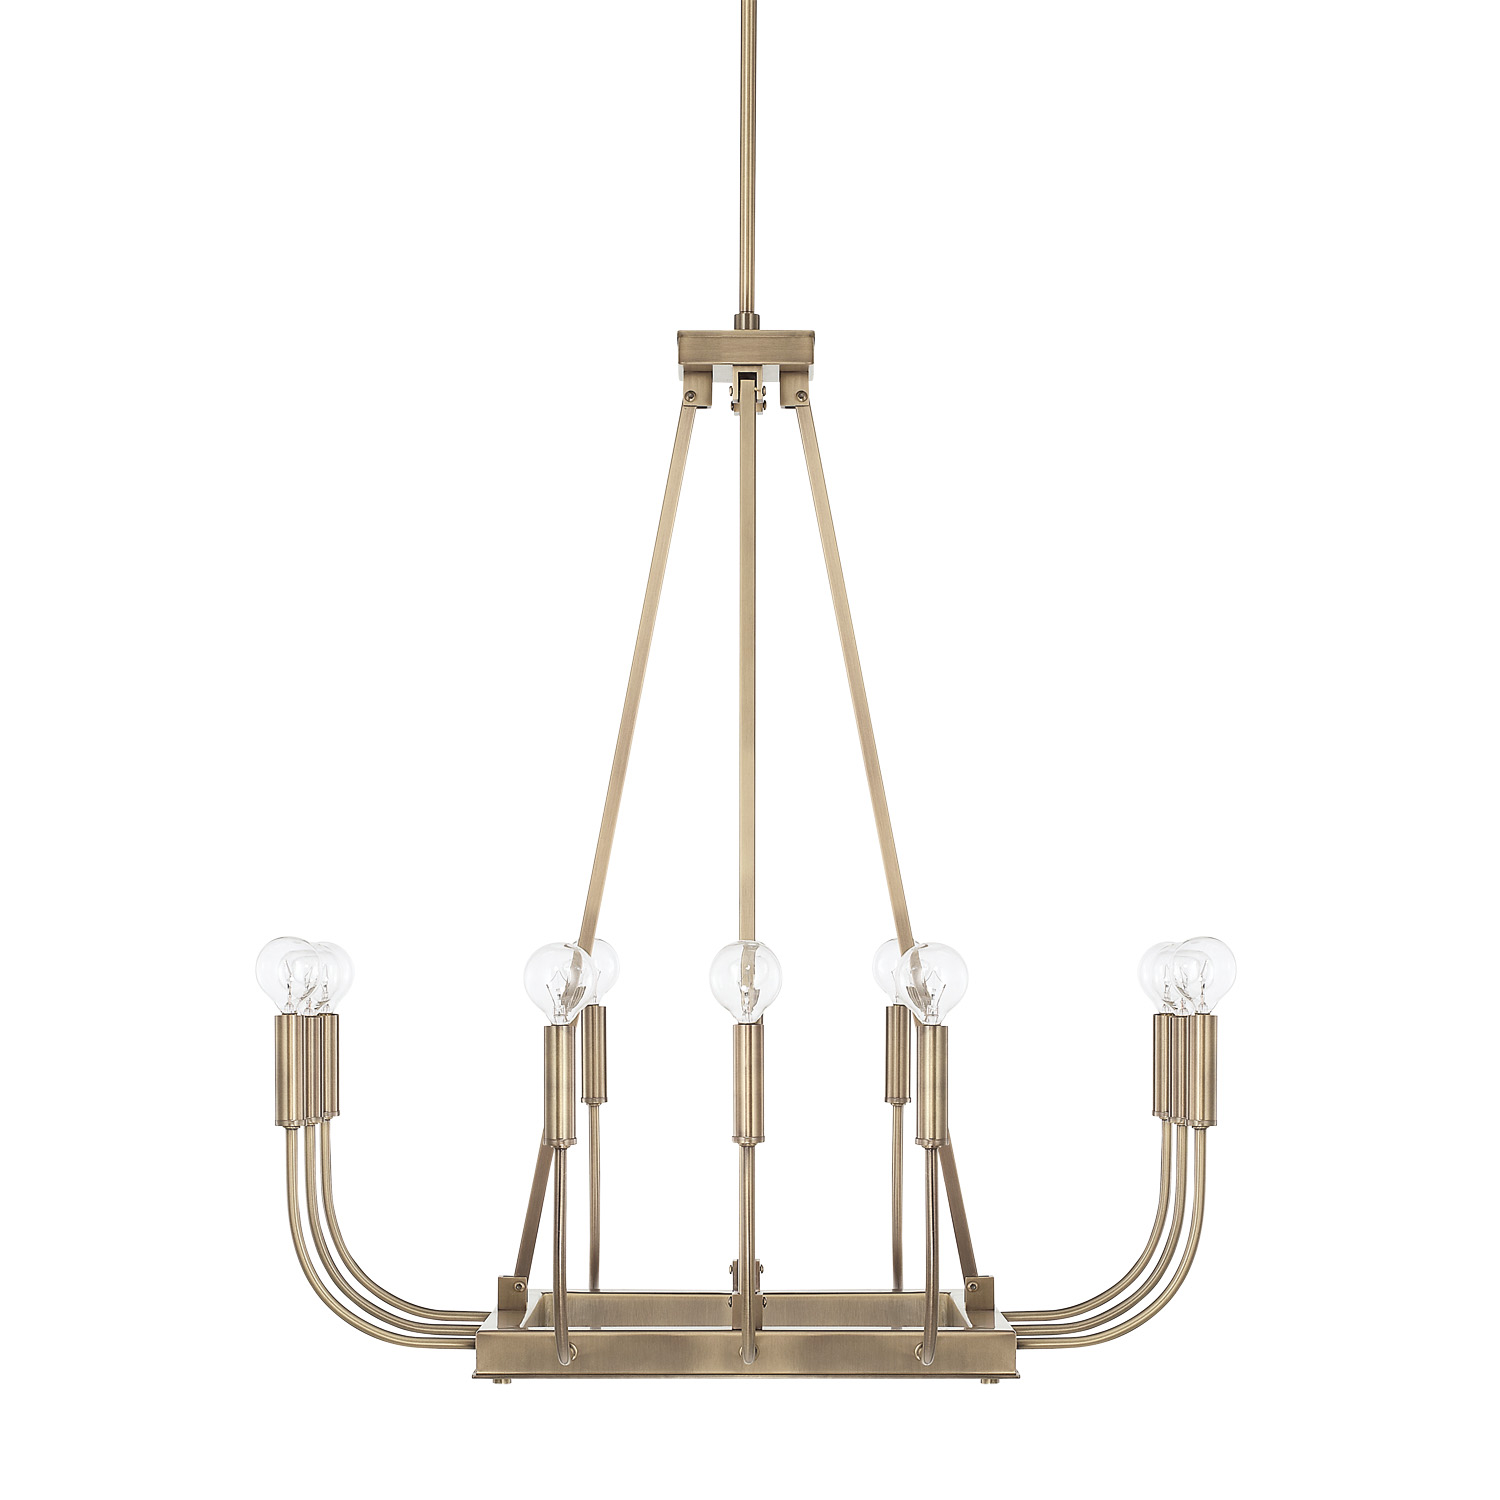 12 Light Chandelier from the Zander collection by Capital Lighting 421901AD